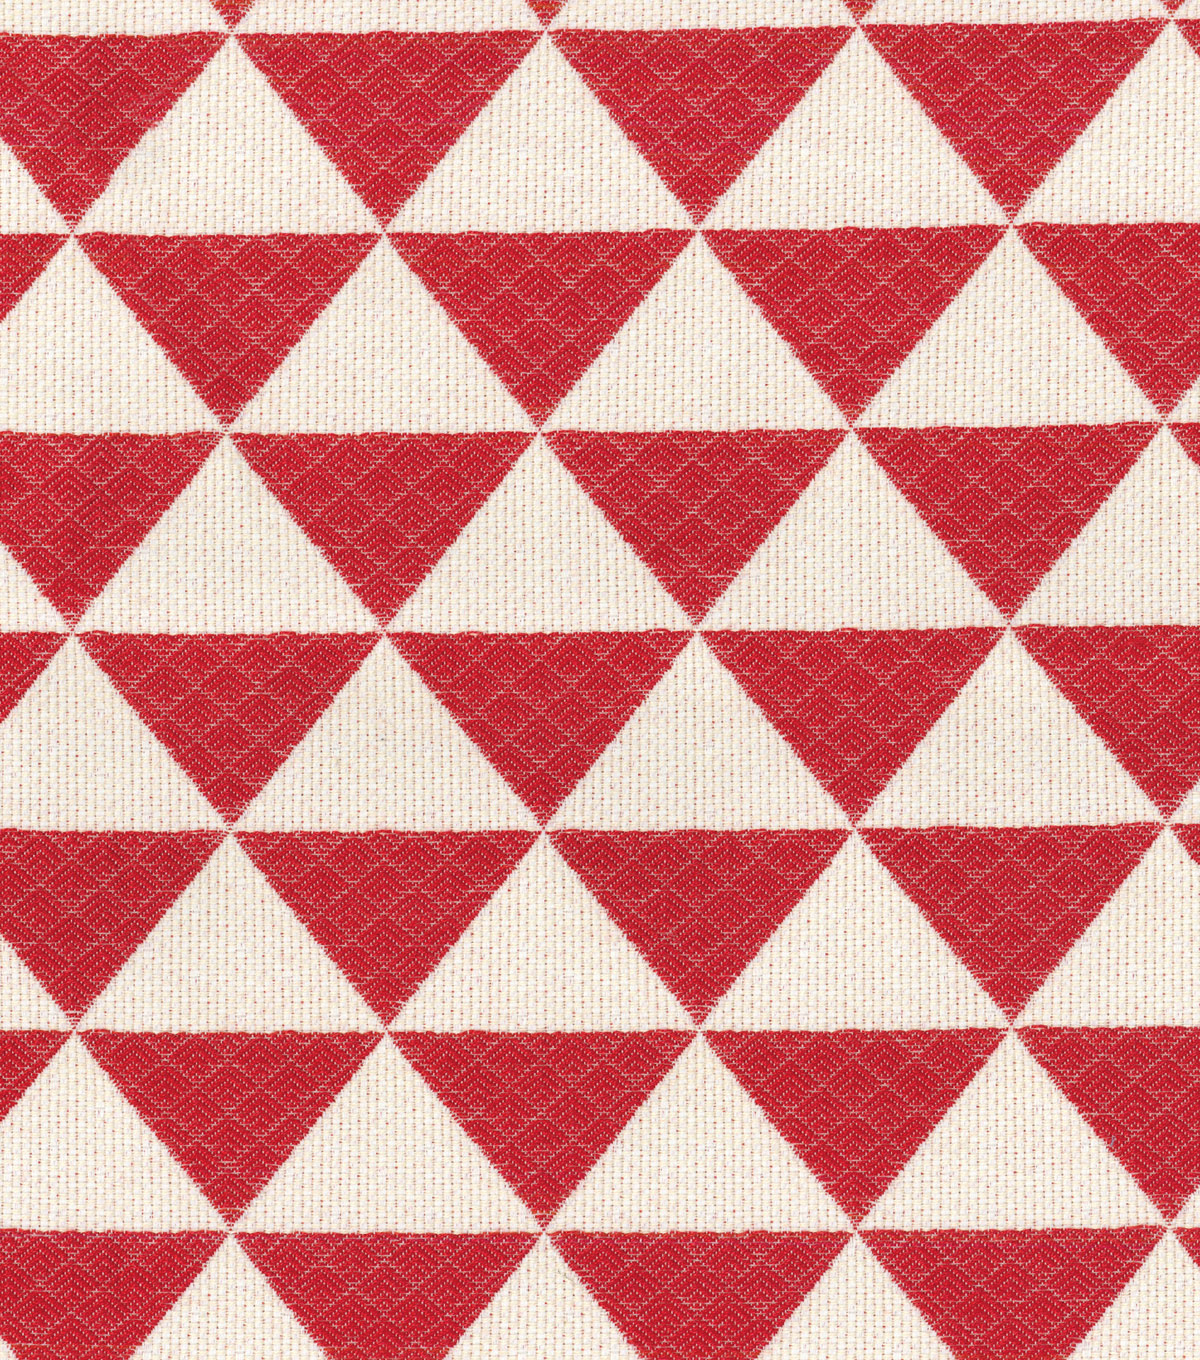 HGTV Home Upholstery Fabric-Tribeca/Ruby